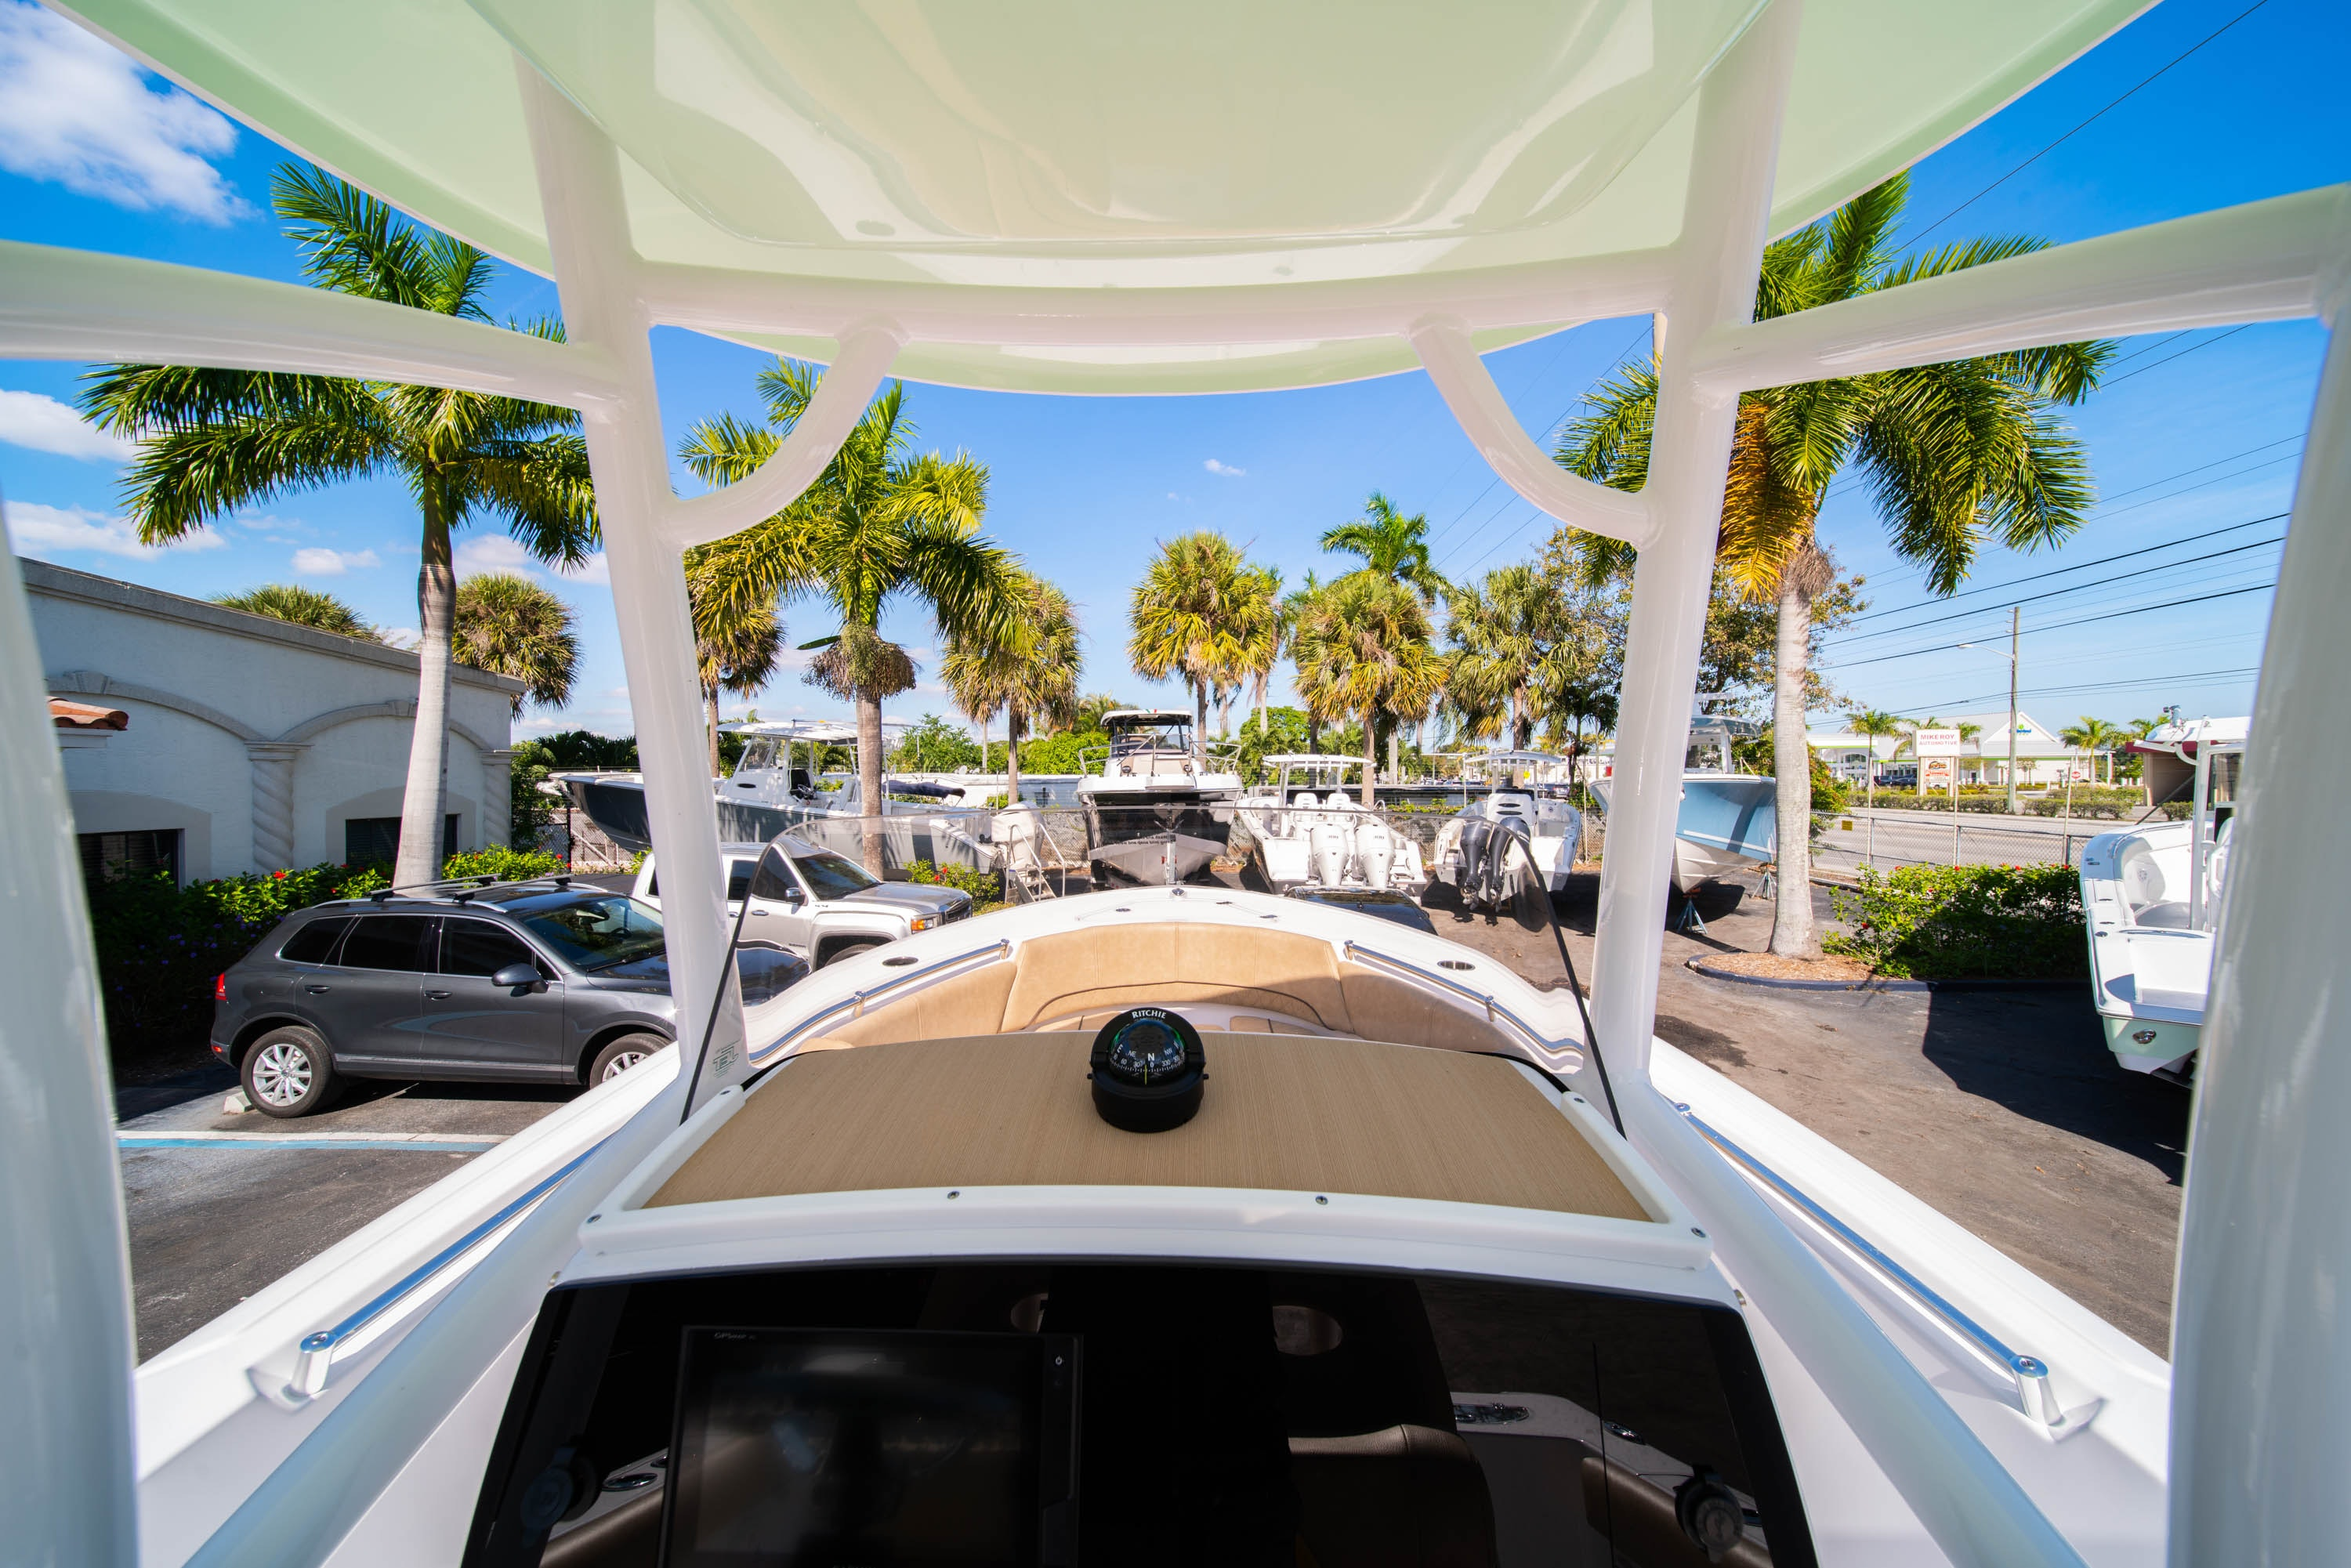 Thumbnail 25 for New 2020 Sportsman Open 232 Center Console boat for sale in West Palm Beach, FL